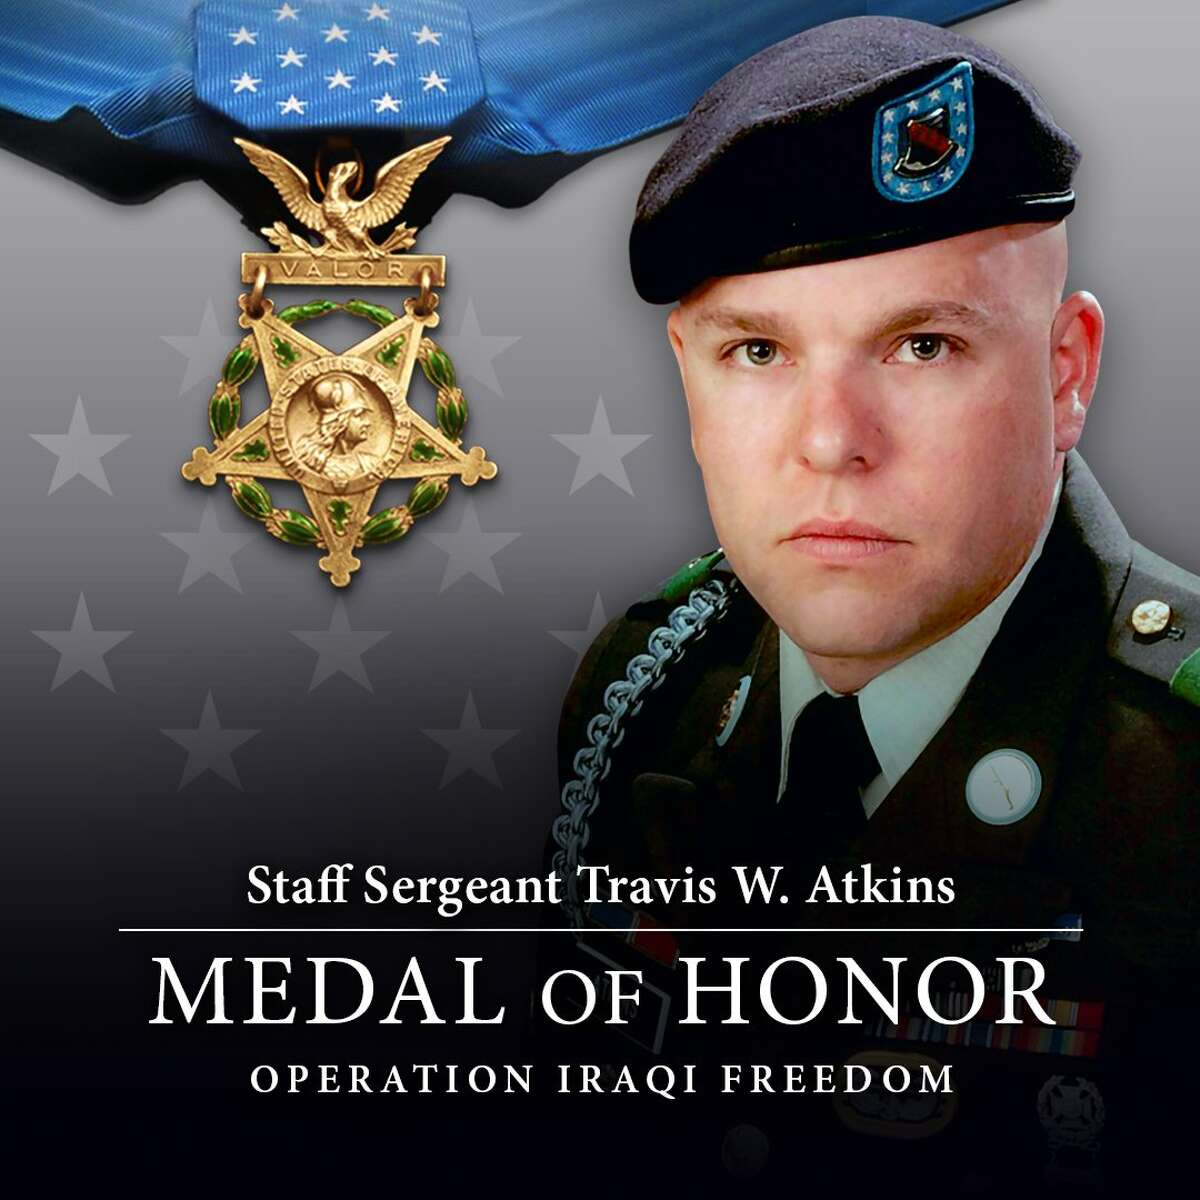 Staff Sgt. Atkins, of Bozeman, Montana, posthumously will become the fifth U.S. service member to receive the nation's highest award for combat valor, the Medal of Honor, for actions during the eight-year Iraq War. A member of the 10th Mountain Division of Fort Drum, New York, he is credited with saving the lives of Aijo and two other soldiers by smothering a suicide vest laced with grenades, worn by the man he body-slammed.